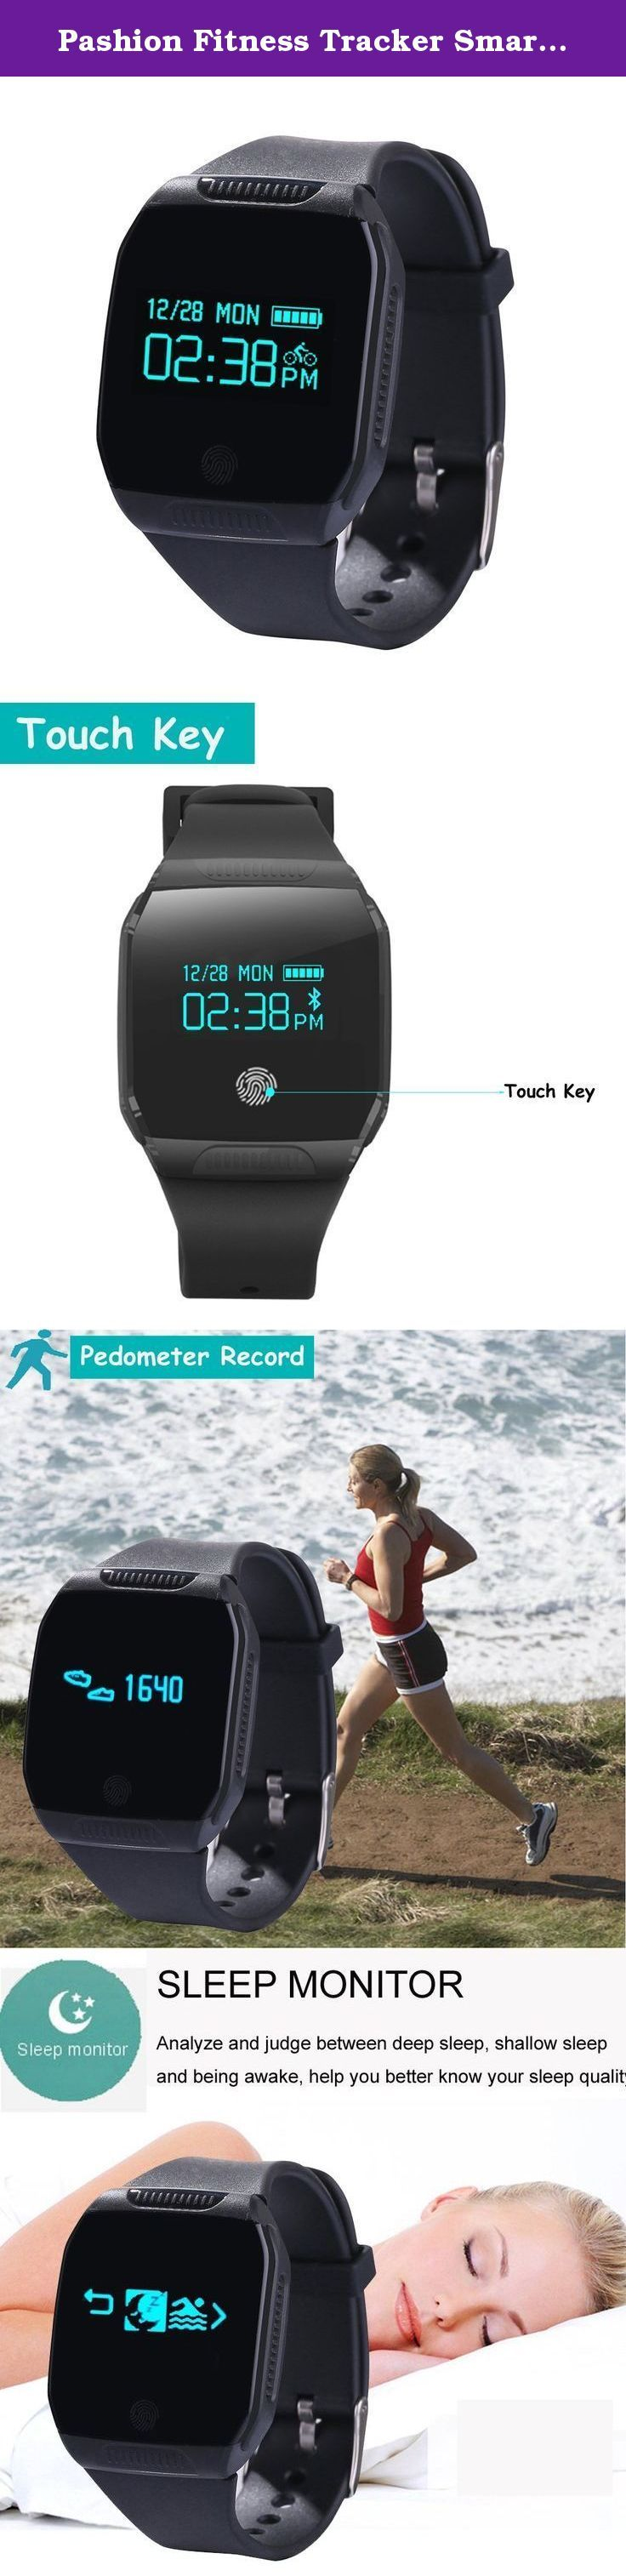 Pashion Fitness Tracker Smart Watch Touch key for Swimming Activity Tracker Bracelet Multi-Sport Tracker Pedometer Sleep Monitor Compatible with iPhone /iPAD IOS 7.0 and Android phone/tablet 4.3+. Feature keep connected with smartphone through Bluetooth Touch key and turn wrist operated, wristband and body can be detached. Function : Pedometer/Kilometer/calorie record, Riding record, Swimming record, Jumping rope record, Jumping Jack record, Sit-up record, Treadmill record, sleep monitor...